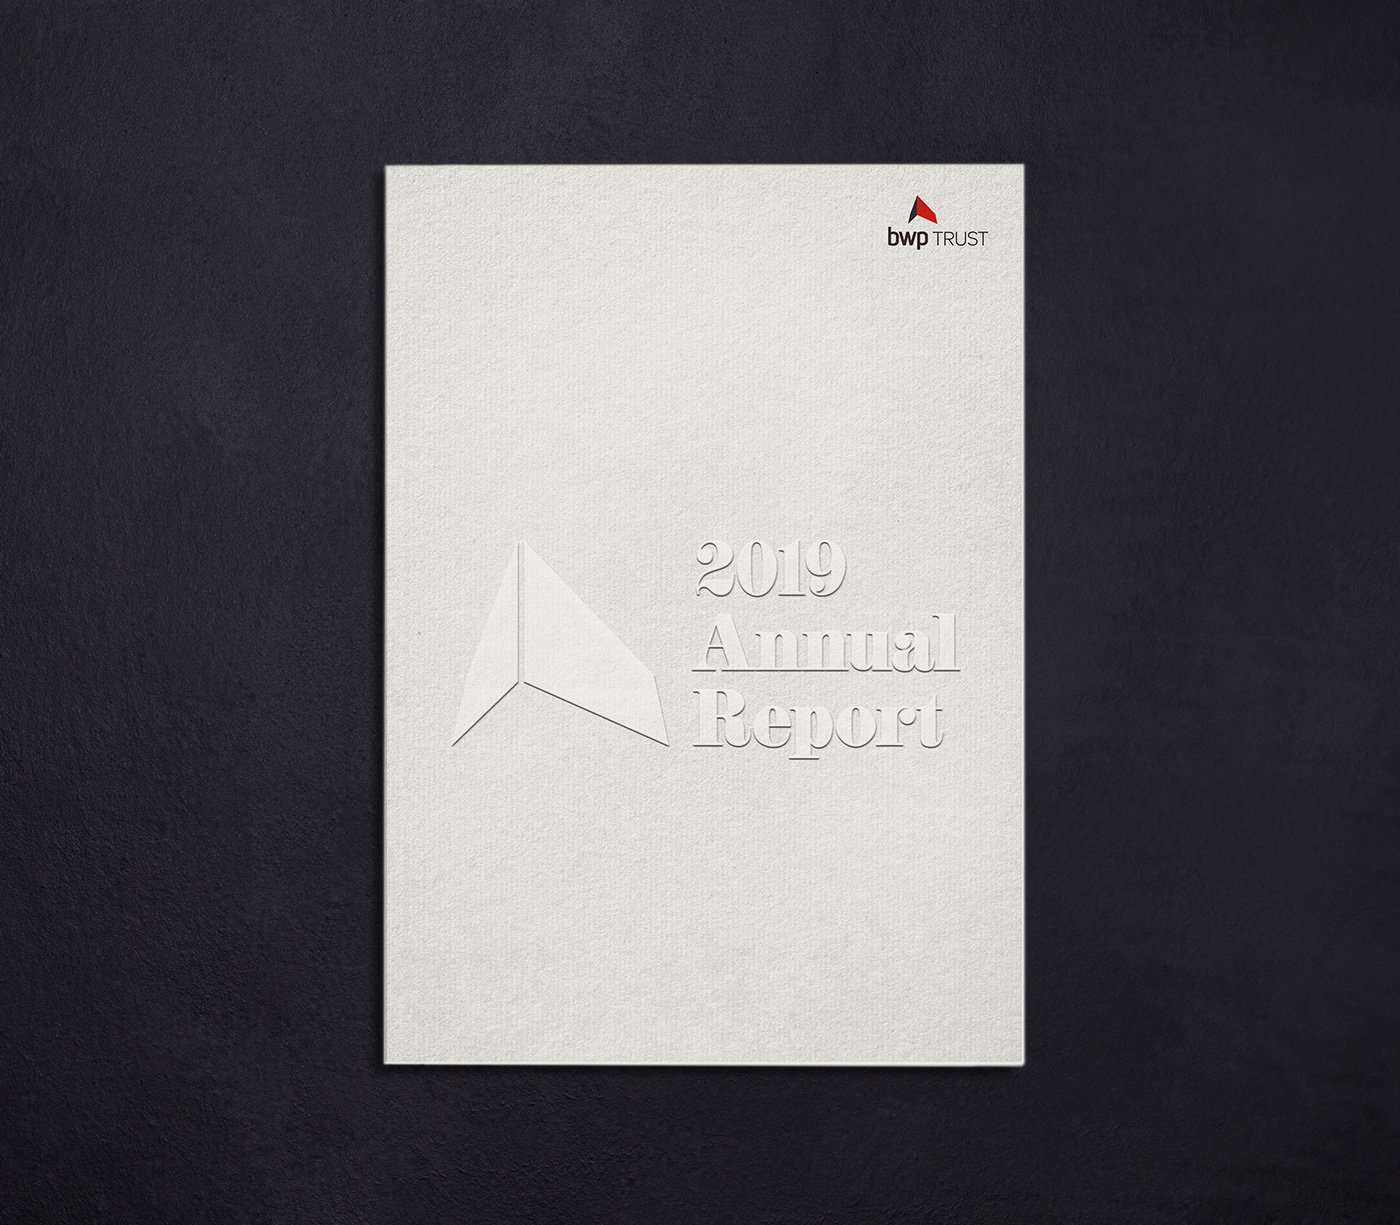 BWP 2019 annual report cover design